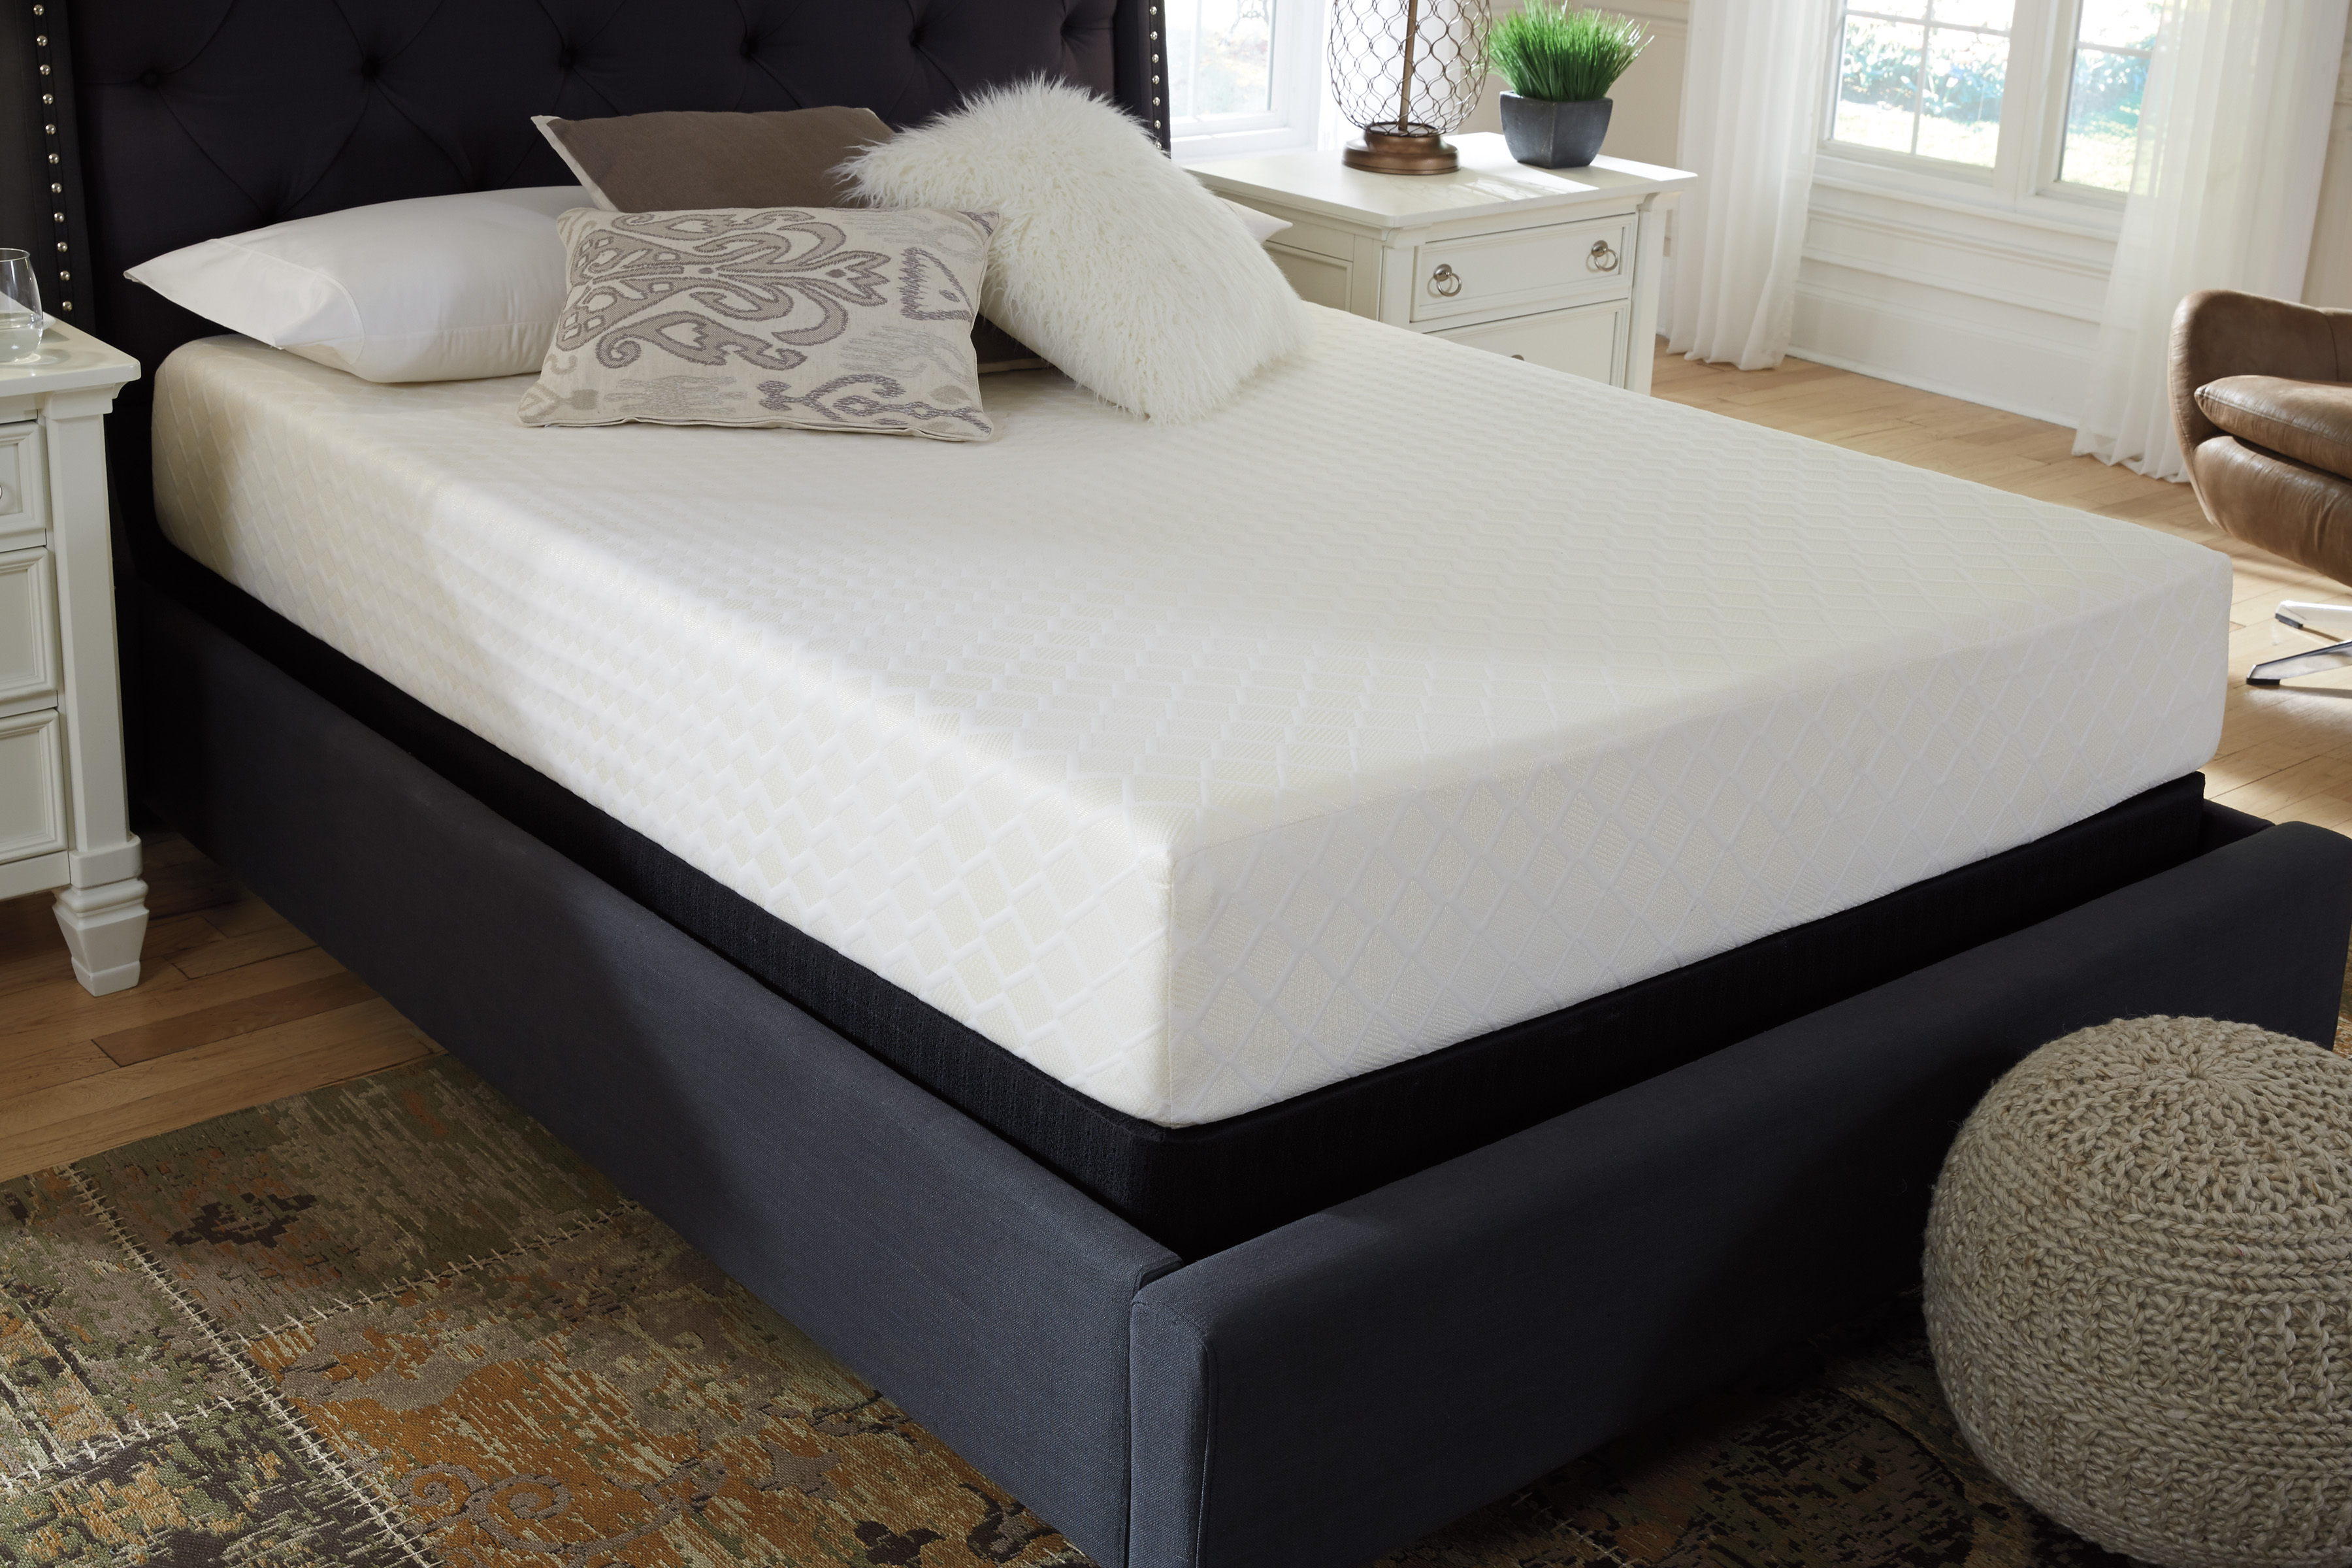 Chime 10 Inch Memory Foam Queen Mattress | Freedom Rent To Own